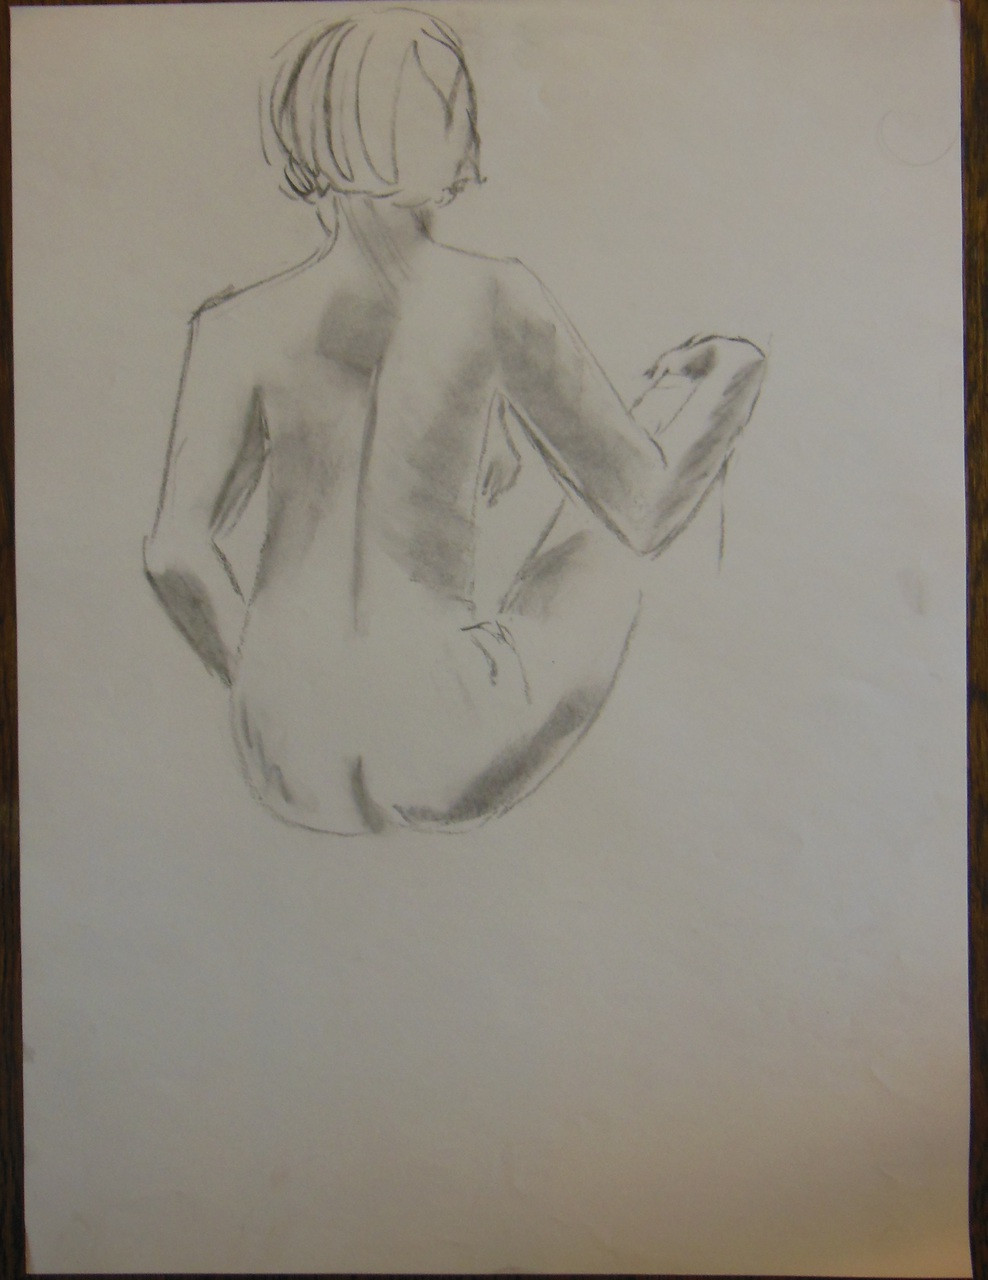 Unfinished Nude Drawing: Charcoal & pastel on grey paper. 11